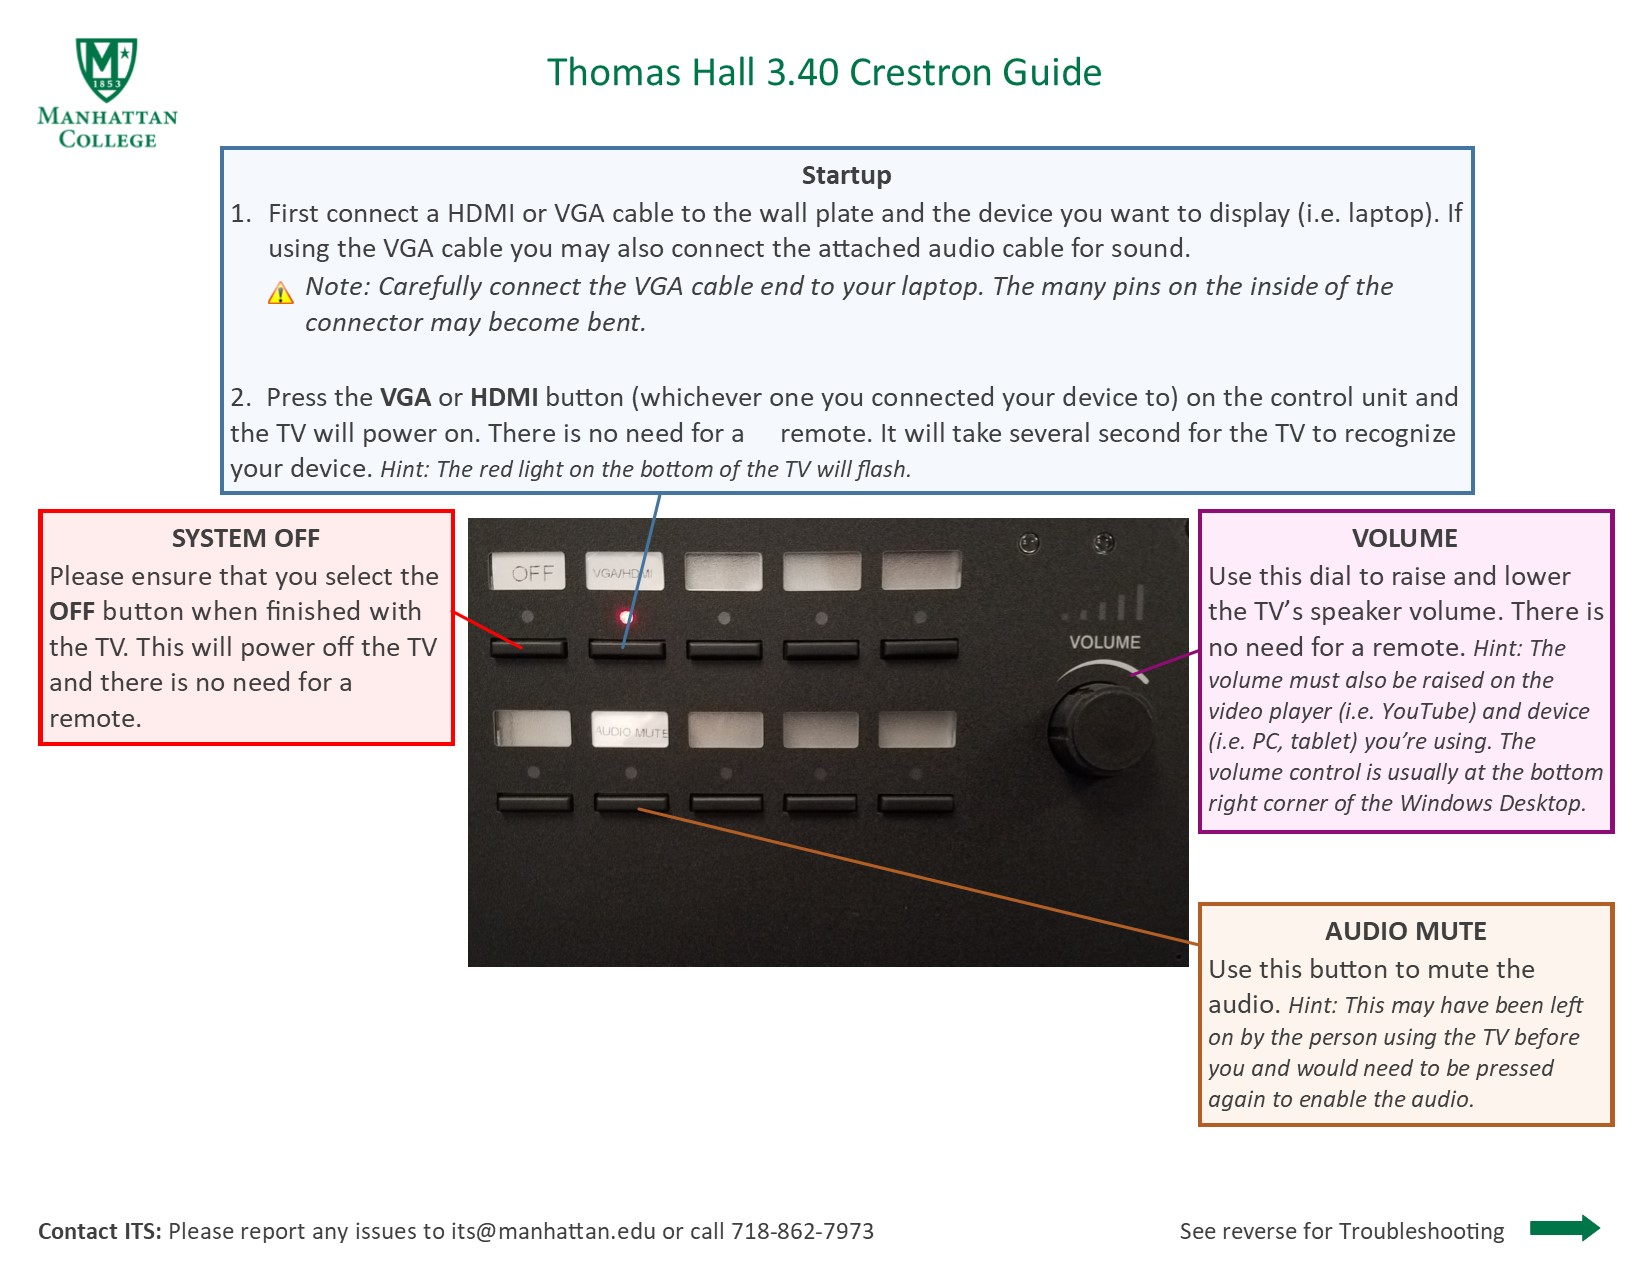 image that depicts the podium guide for thomas hall 3.4